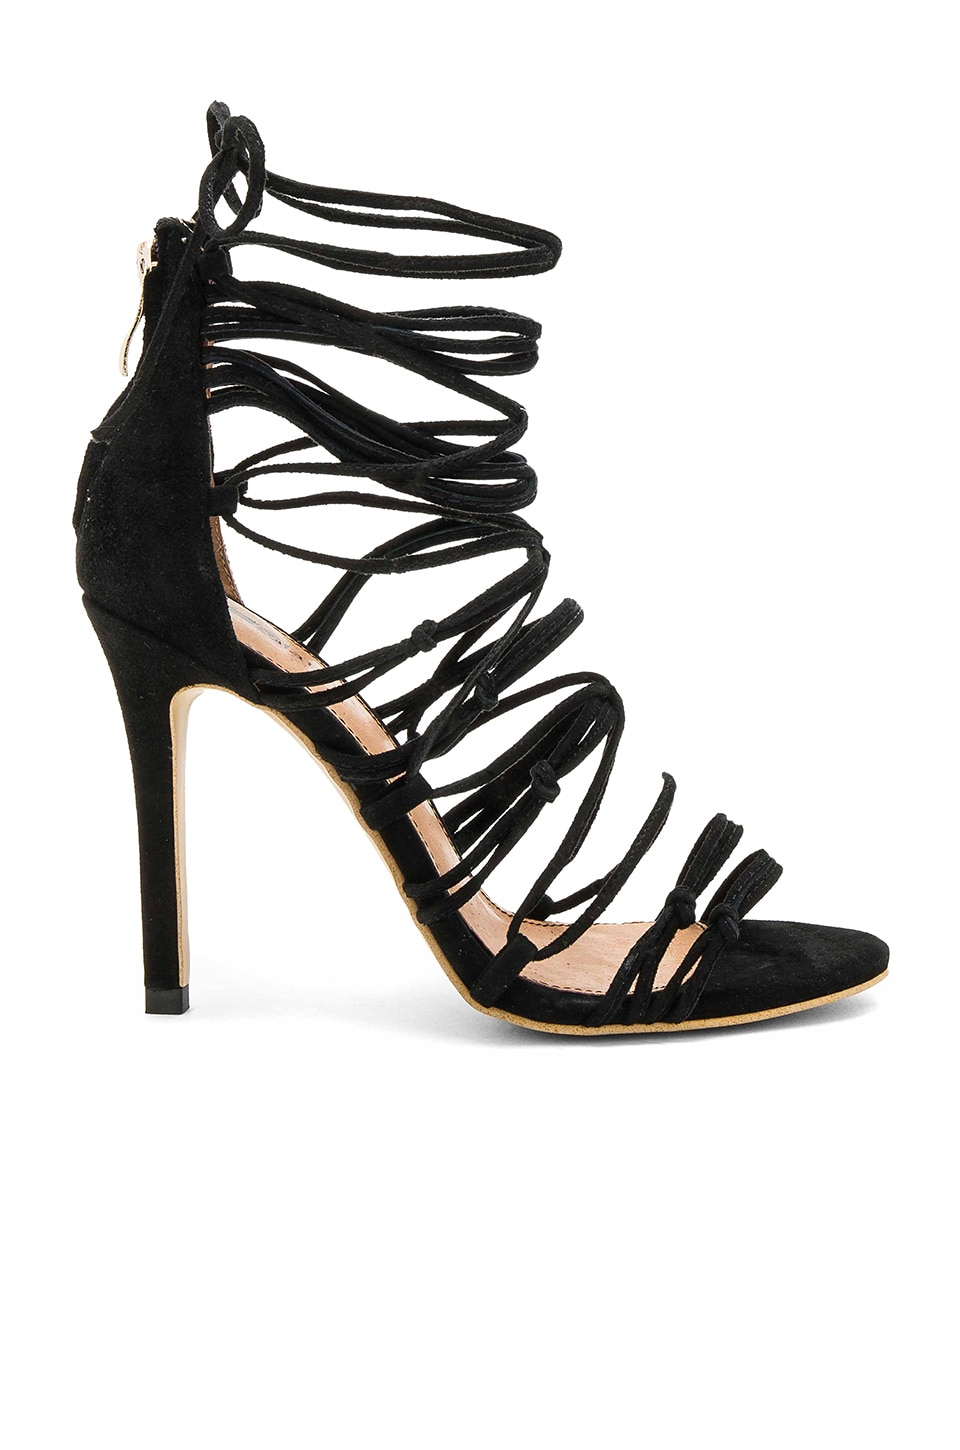 Photo of Lapsley Heels by Matiko shoes